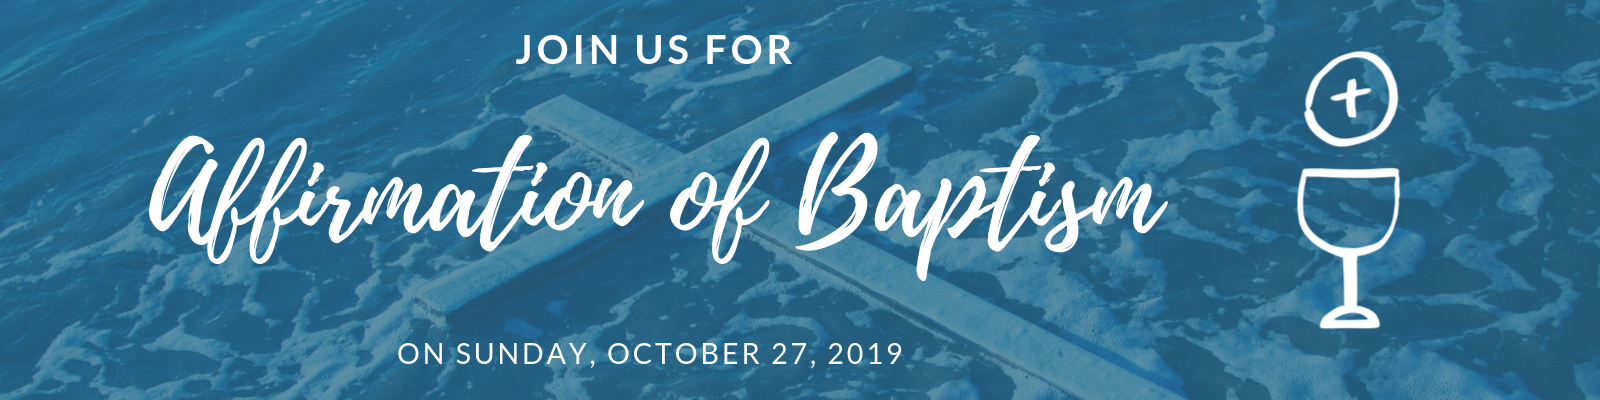 Join us as we celebrate Affirmation of Baptism on October 27, 2019 at both services